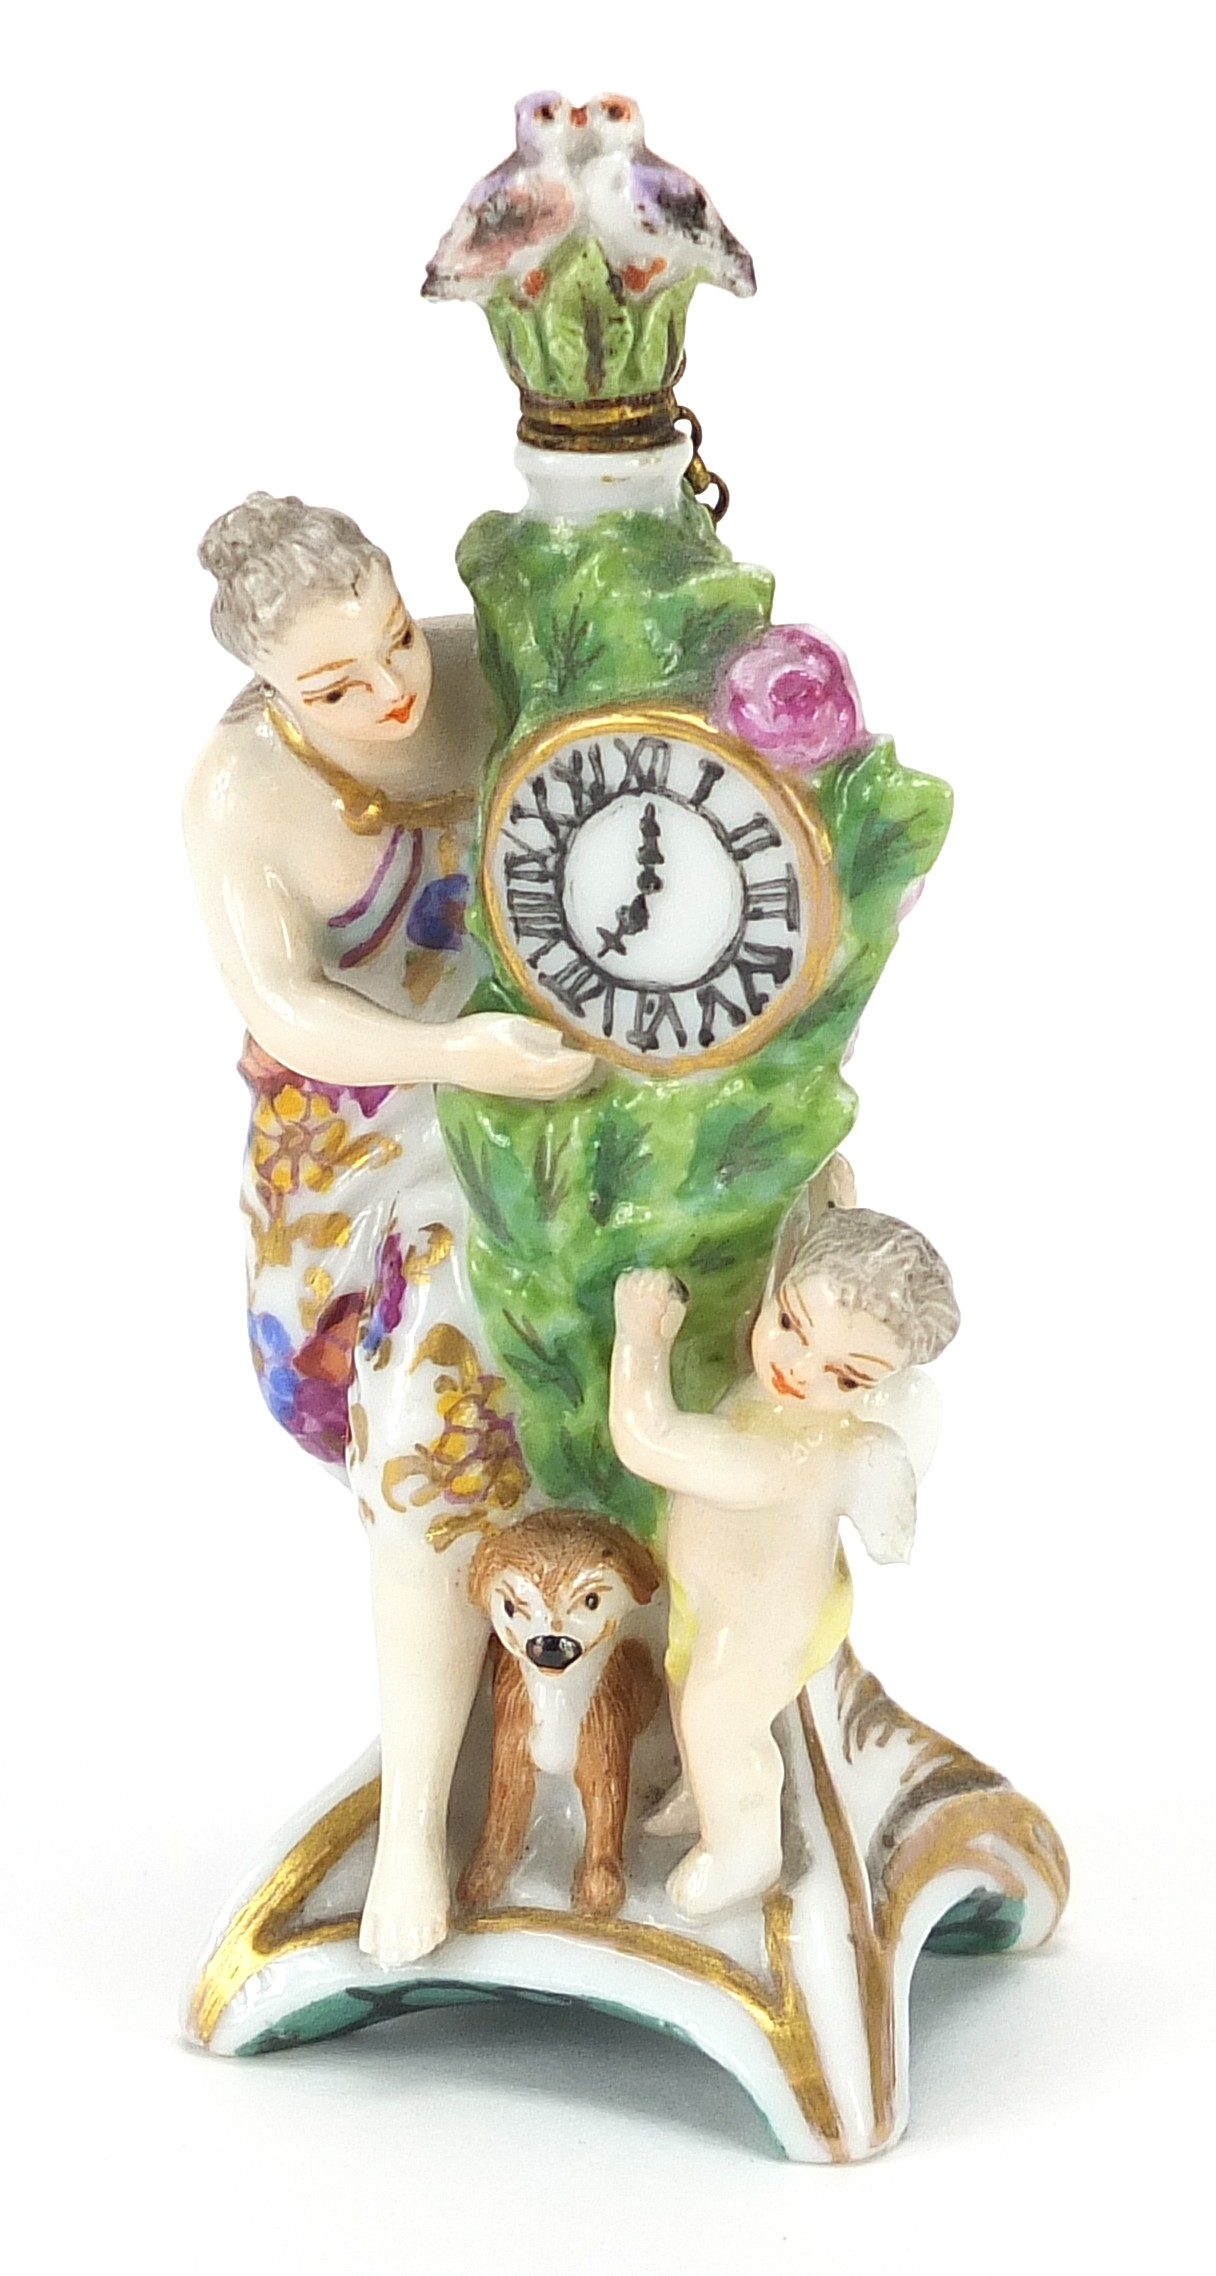 Antique Chelsea style figural scent bottle with bird stopper, 8.5cm high : For Further Condition